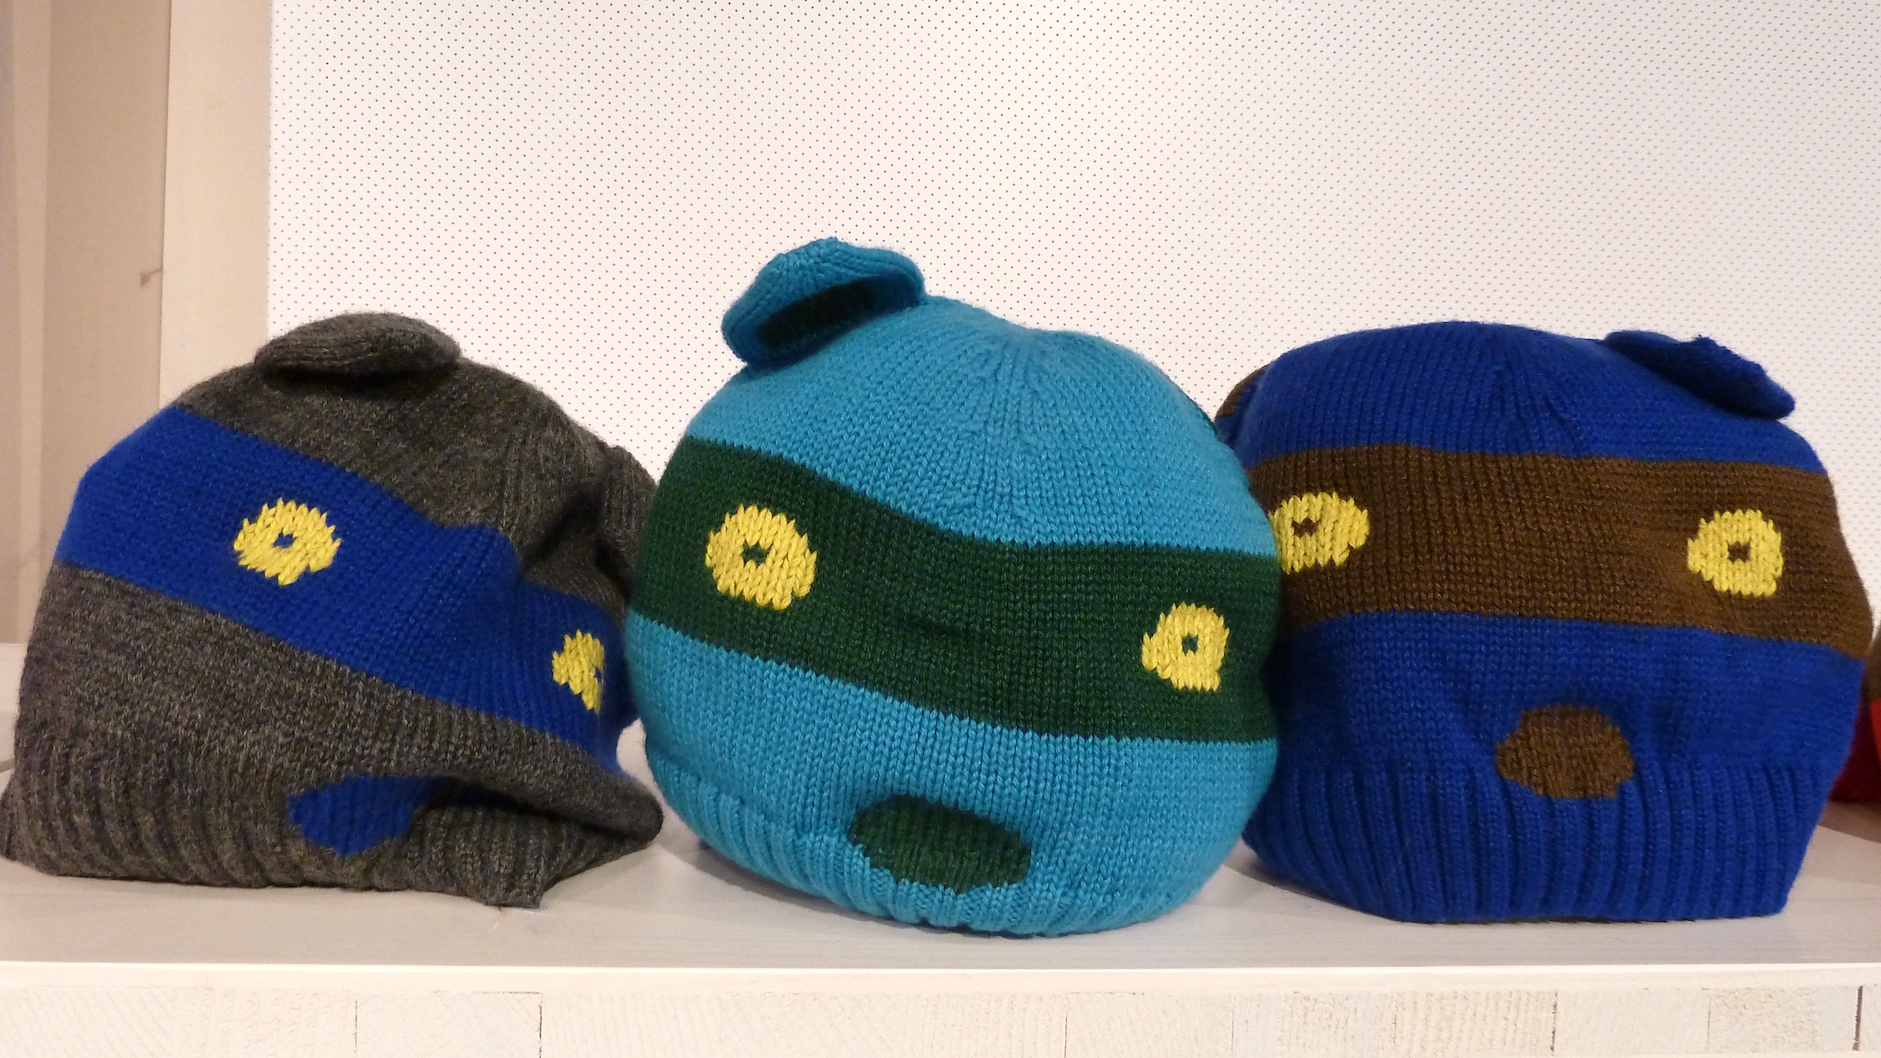 Fun hats from Belgium designer Anne Kurris for childrenswear winter 2011